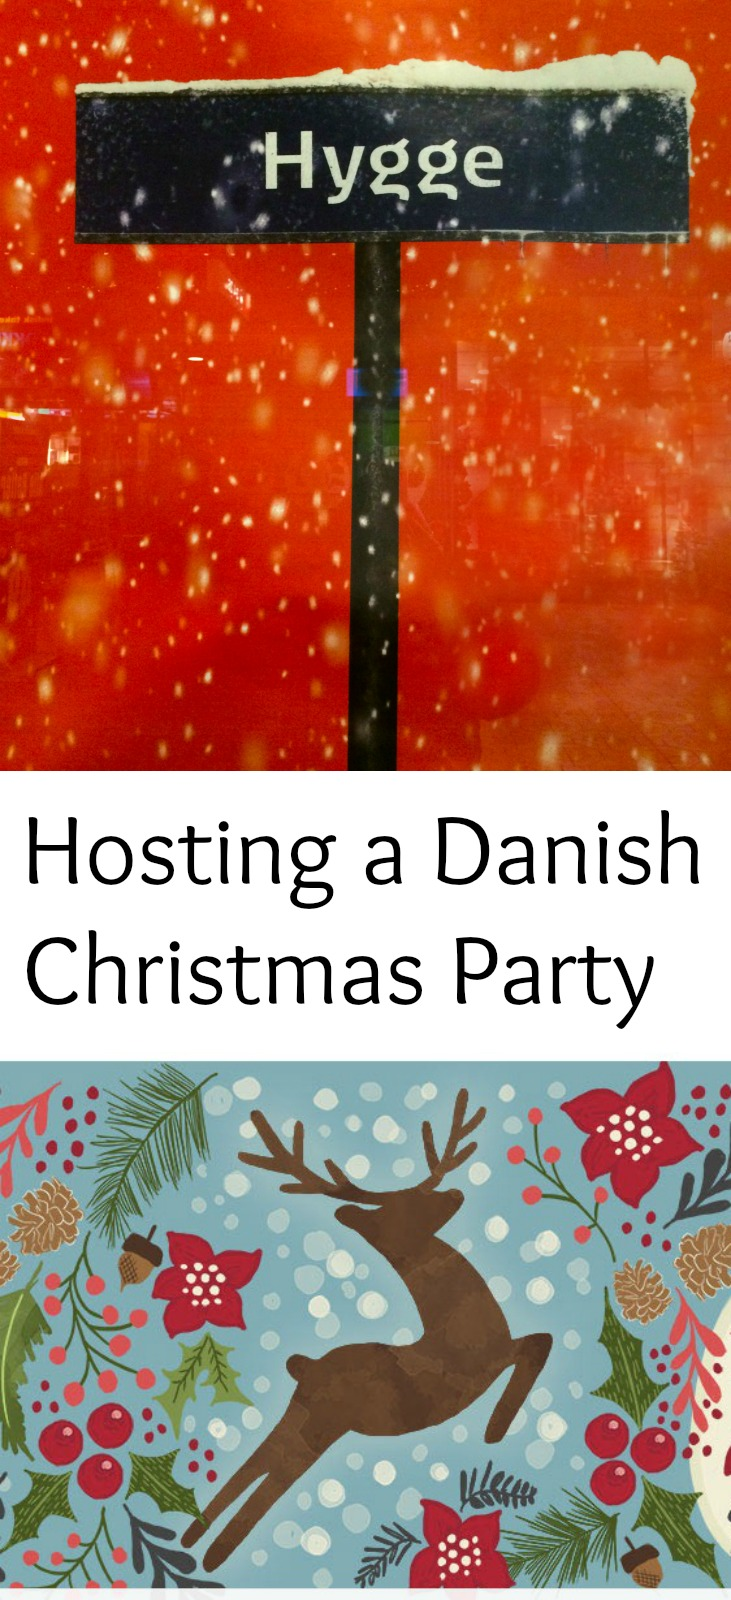 Hosting a Danish Christmas Party is so easy with @Evite Glædelig Jul! #LifesBetterTogether #BeThere #Evite